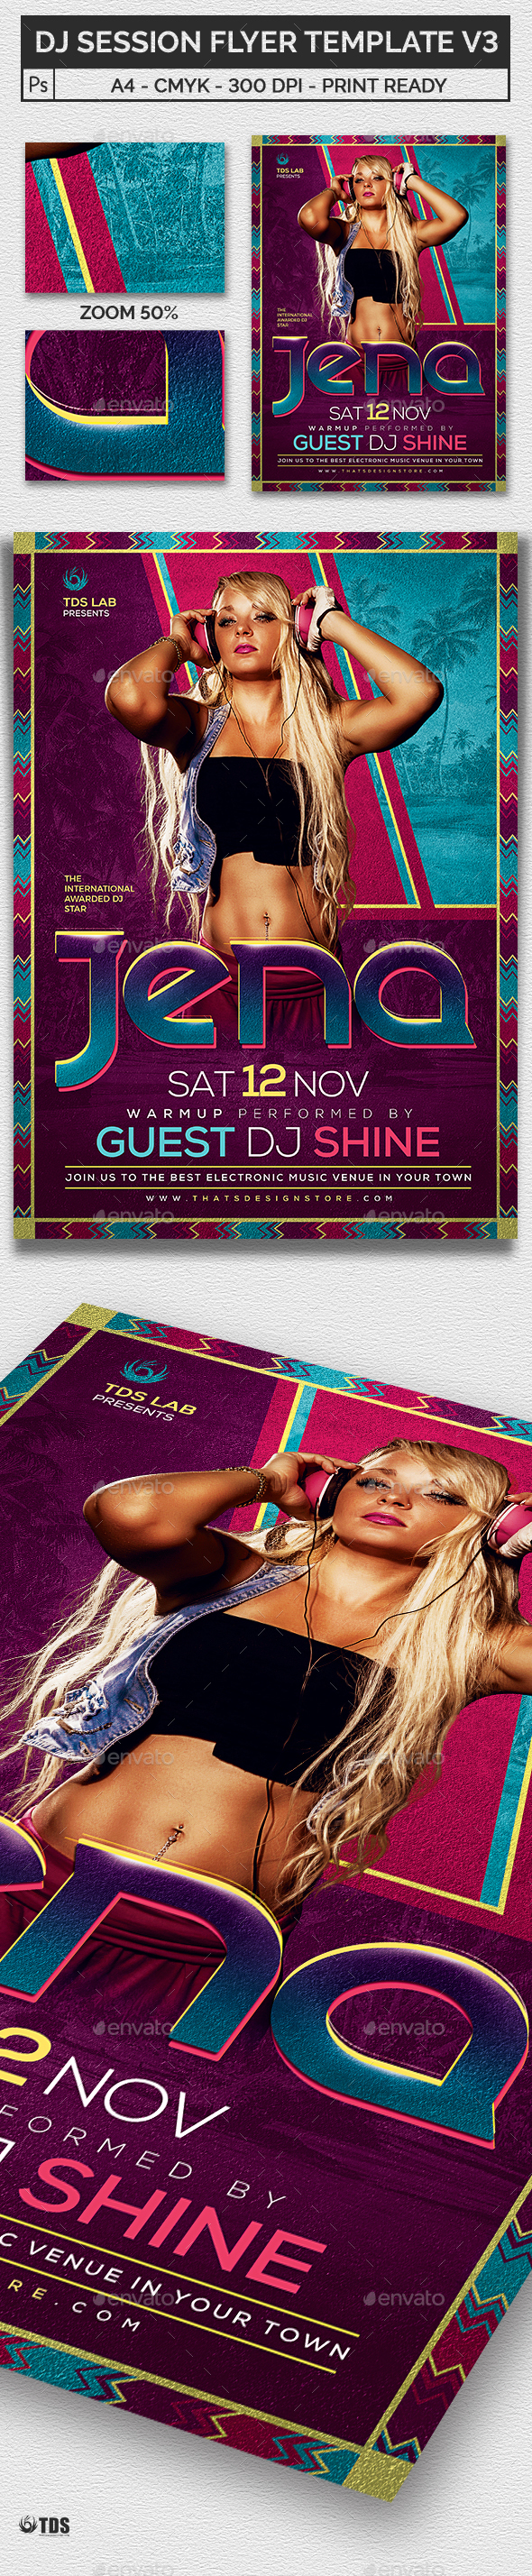 DJ Session Flyer Template V3 - Clubs & Parties Events